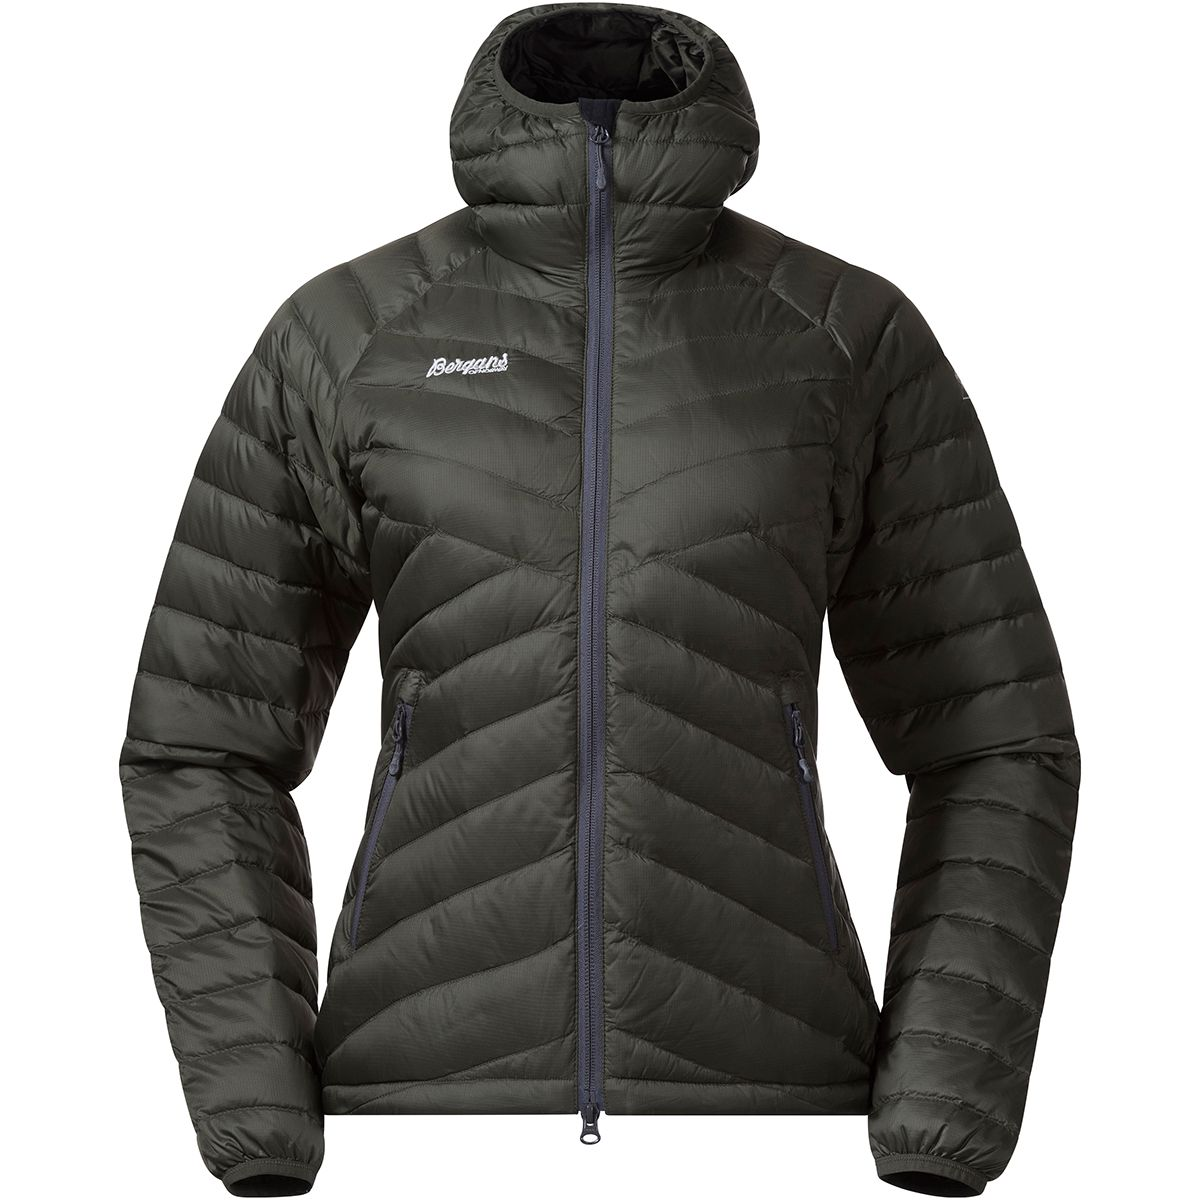 Bergans Damen Pyttegga Down Hooded Jacke (Größe XS, Grau) | Isolationsjacken > Damen